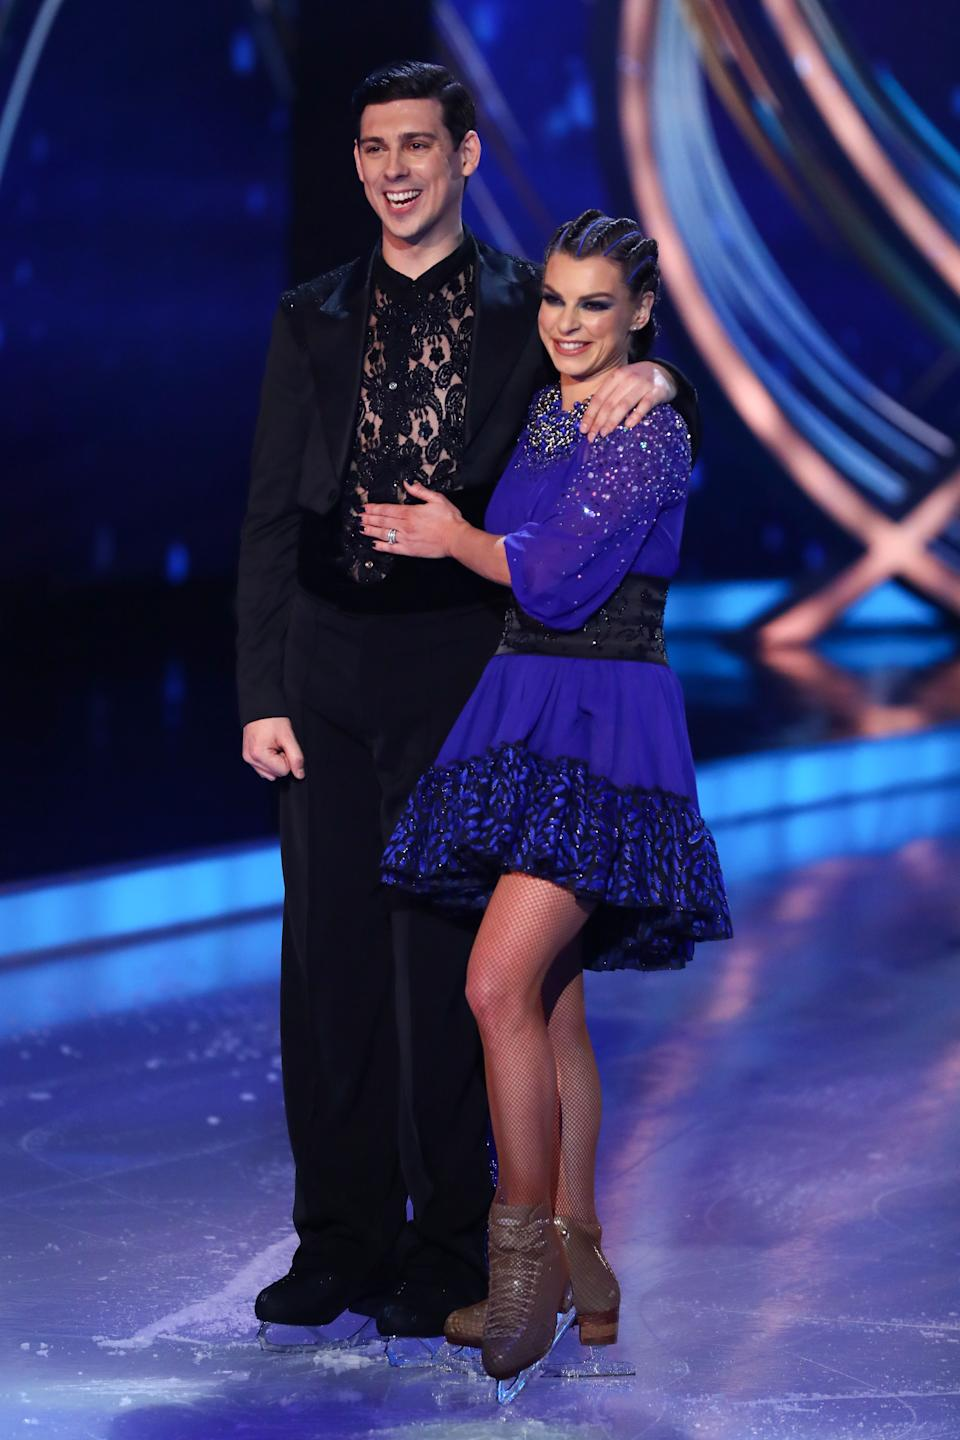 Editorial use only  Mandatory Credit: Photo by Matt Frost/ITV/Shutterstock (11747857z)  Matt Richardson and Vicky Ogden  'Dancing On Ice' TV show, Series 13, Episode 4, Hertfordshire, UK - 07 Feb 2021